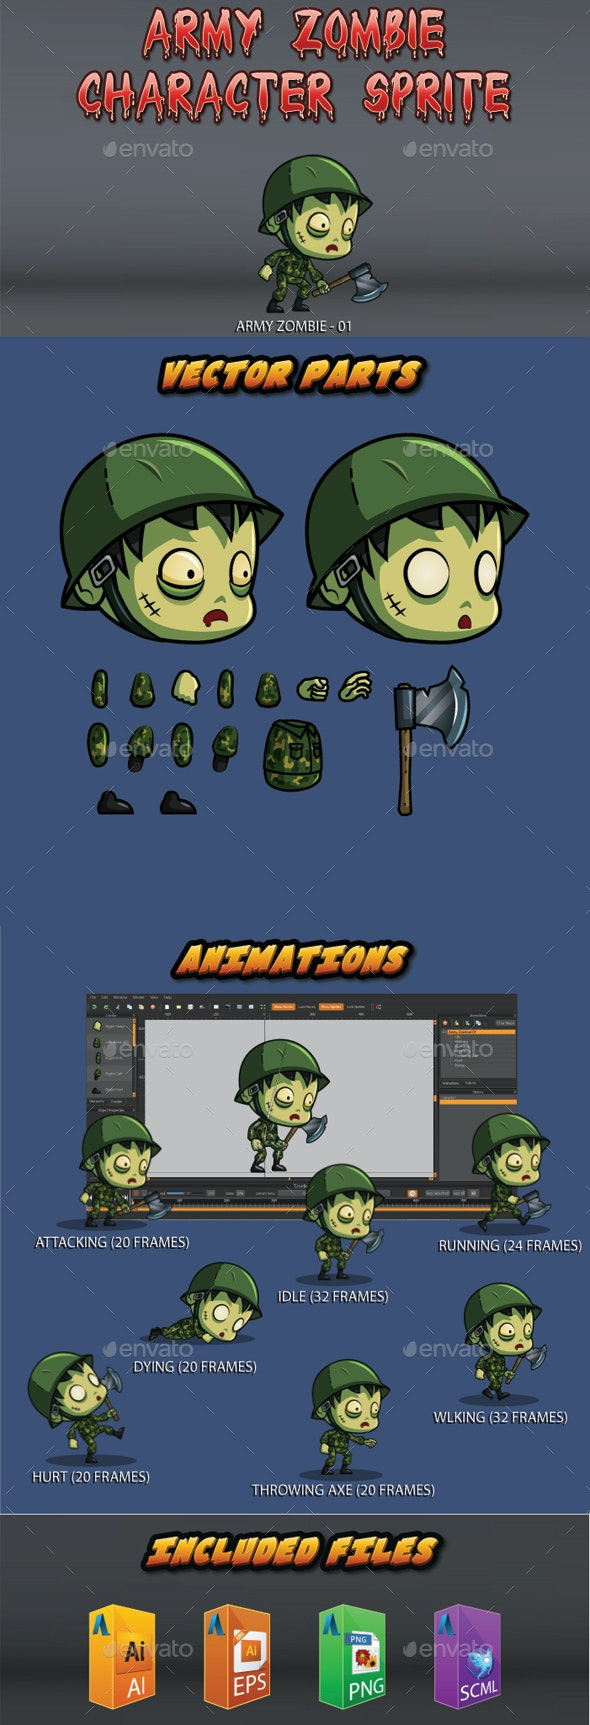 The Army Zombie Character Sprite